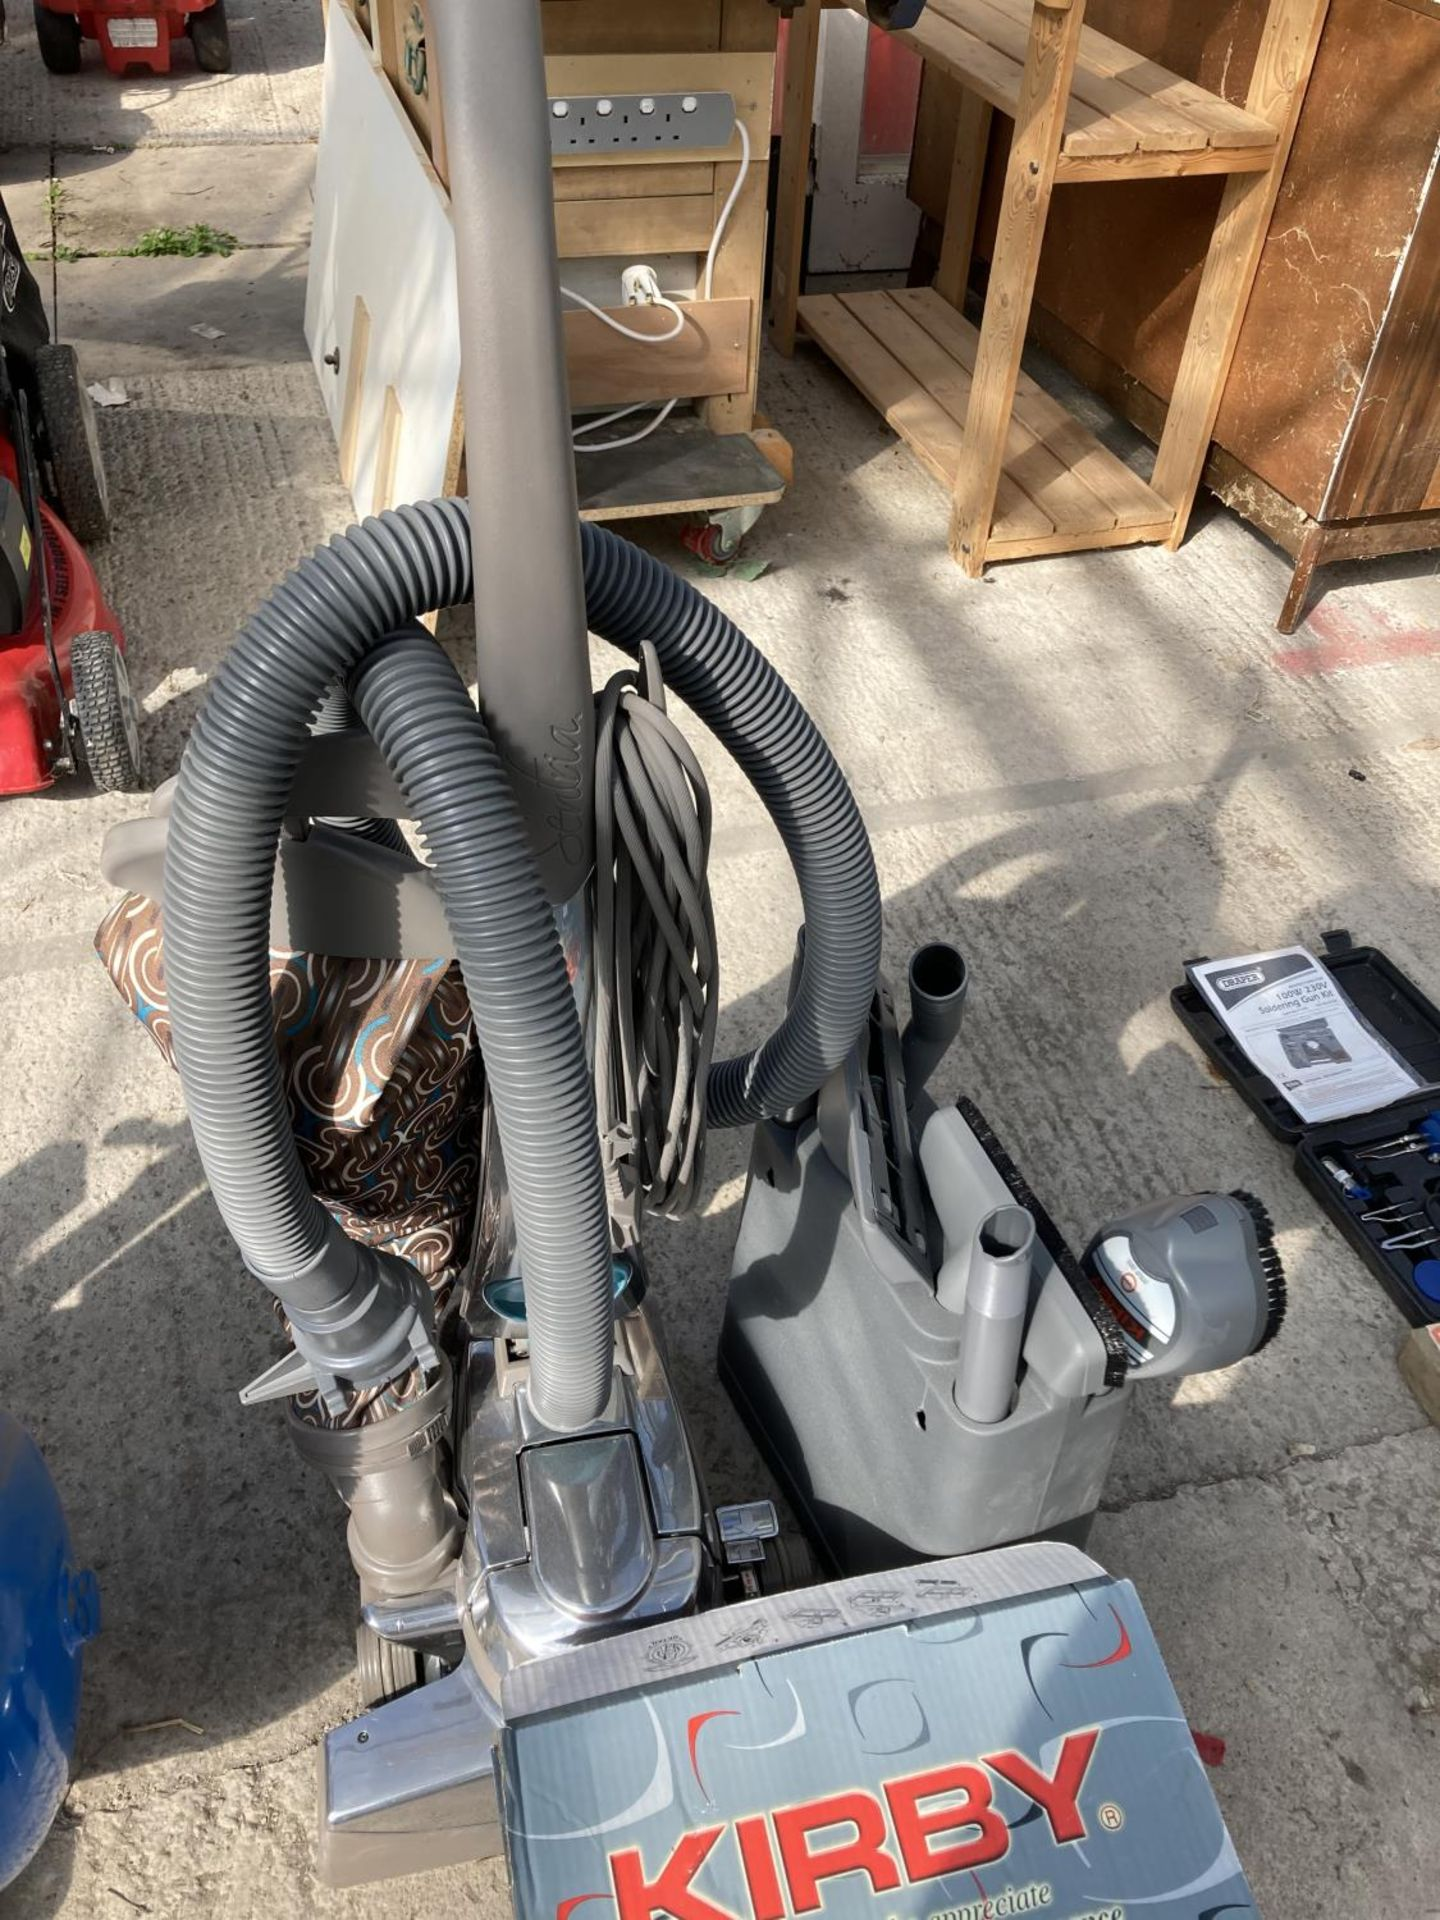 A KIRBY CLEANER AND ATTACHMENTS NO VAT - Image 3 of 5